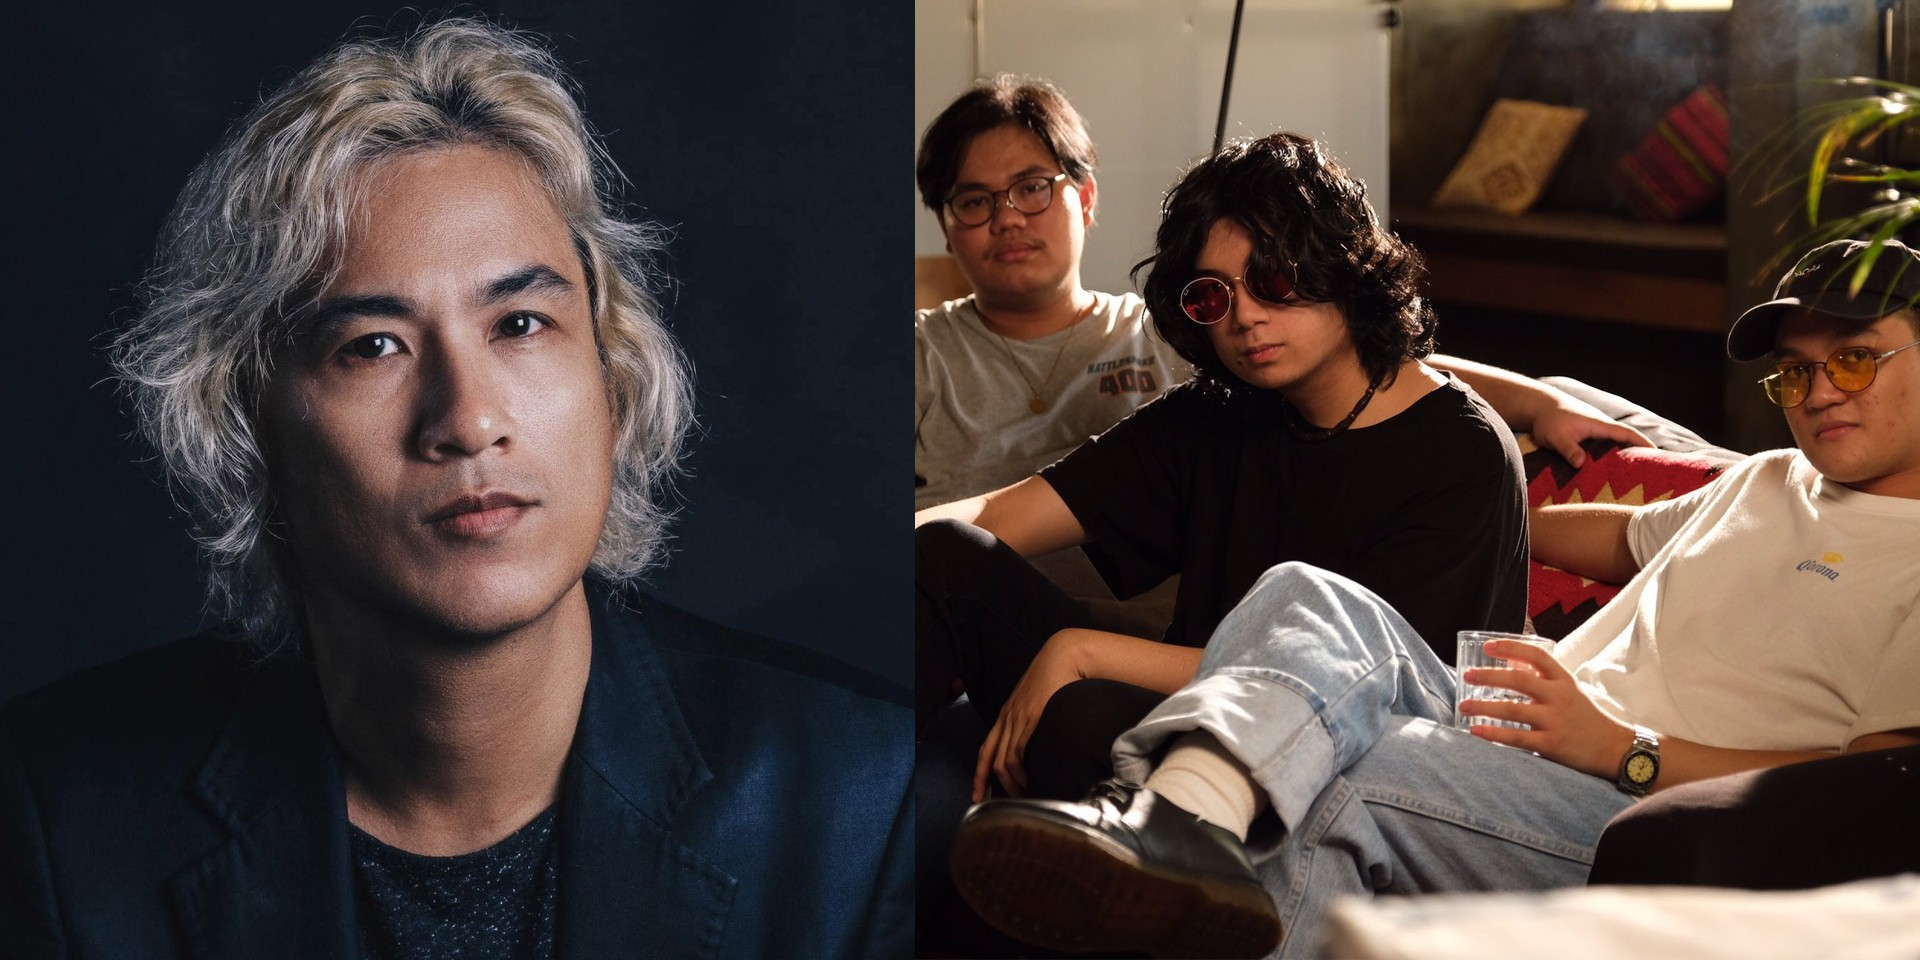 Ely Buendia to hold 'Superproxies' online concert with Nobody's Home